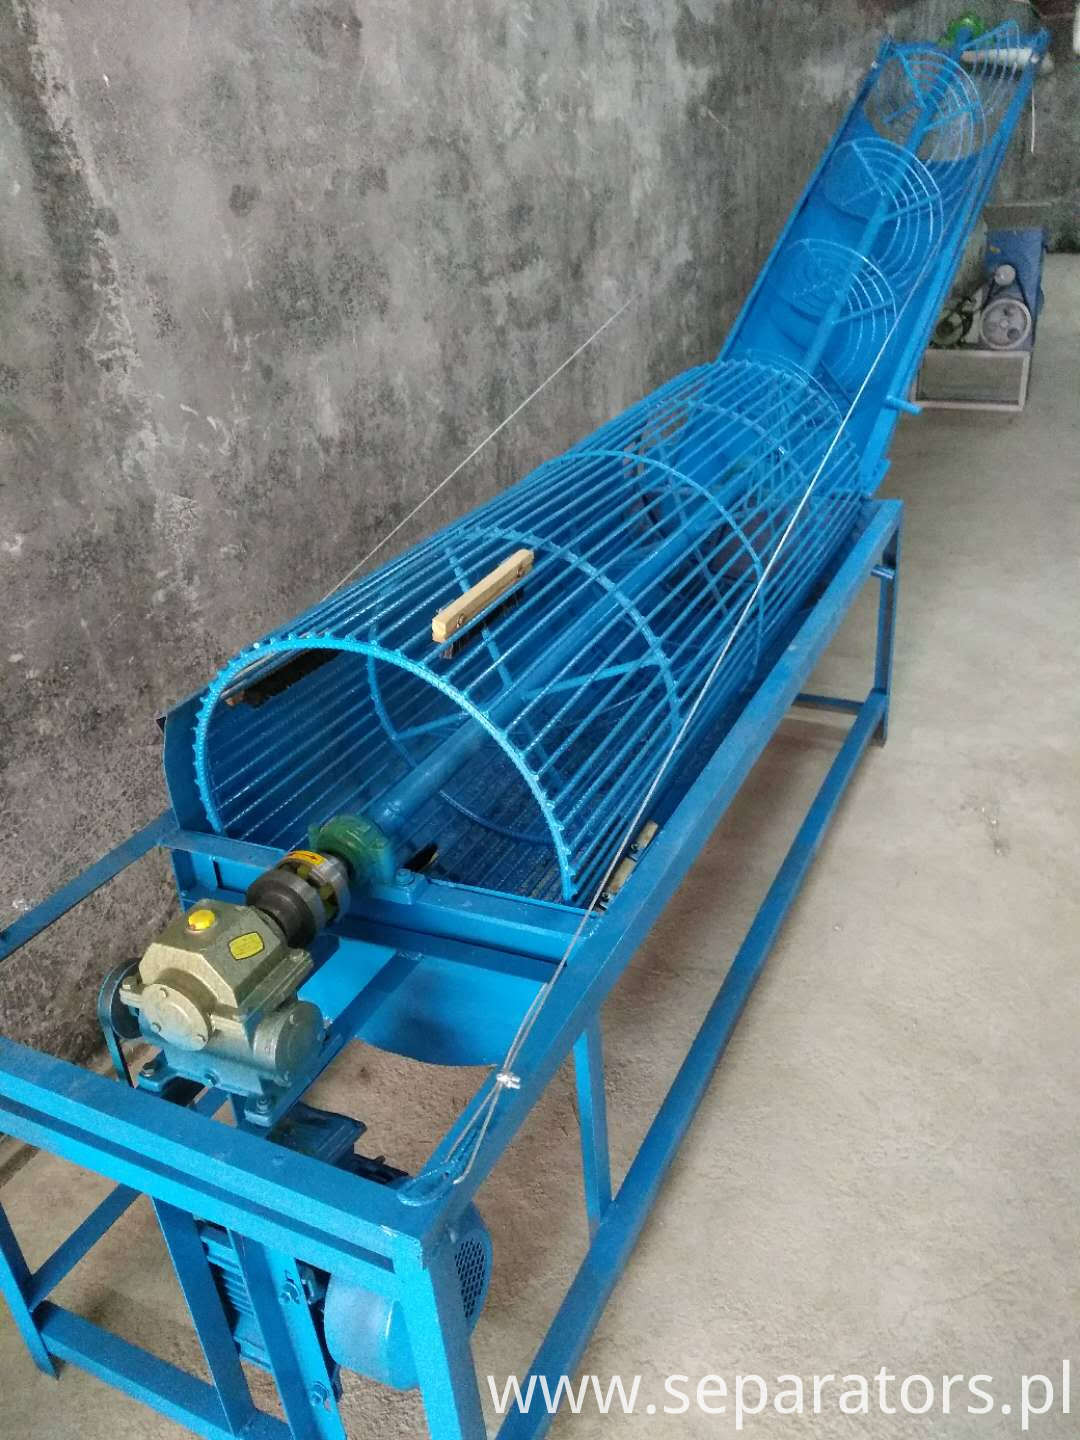 QX-200 Hawthorn Cleaning Conveyor